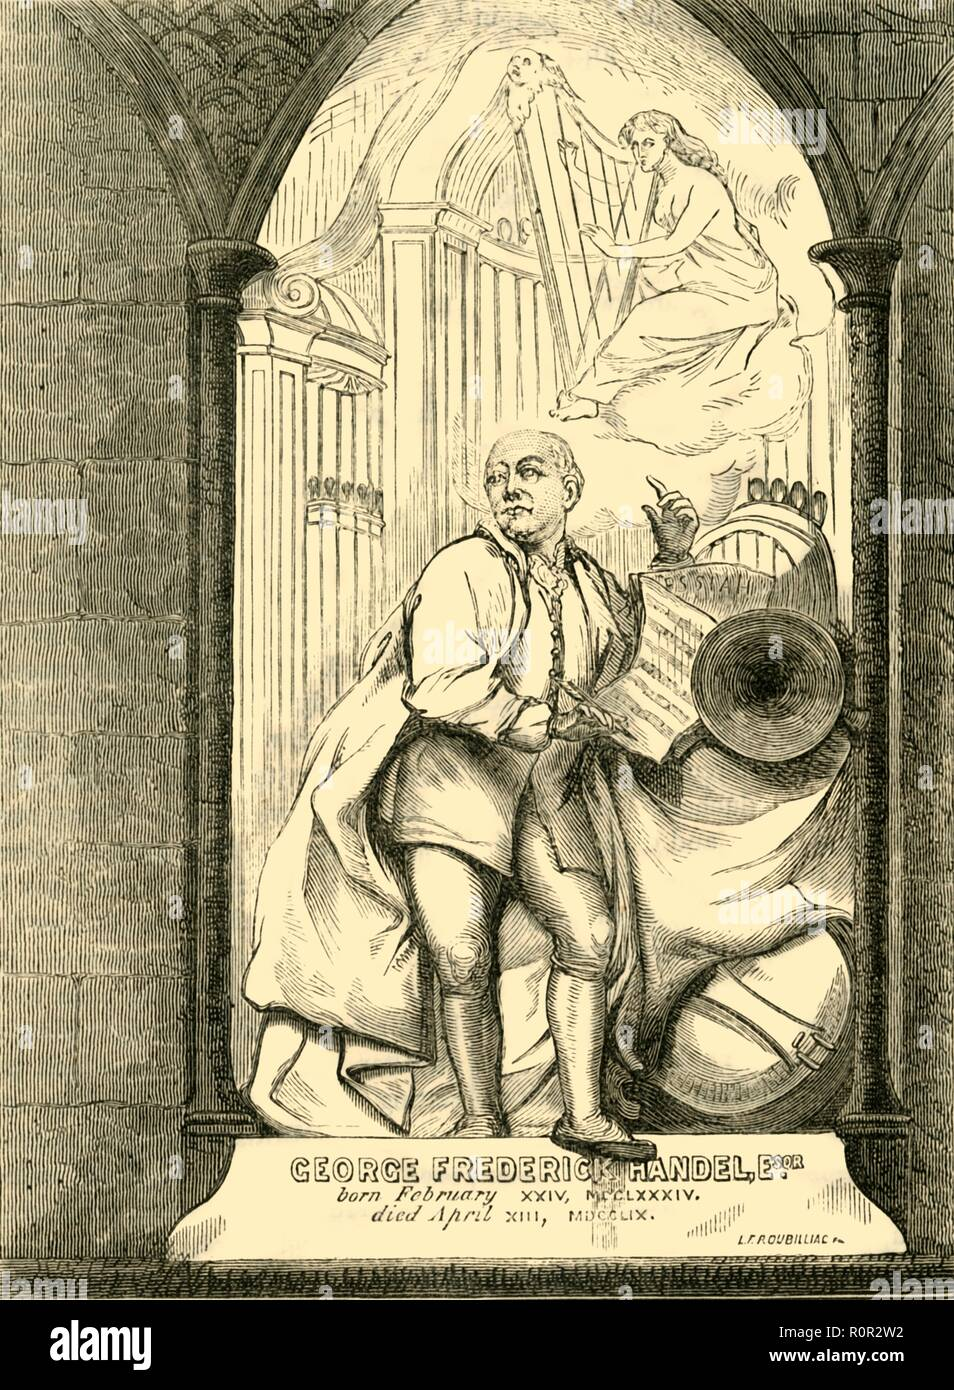 'Handel's Monument', (1881). Monument to the composer George Frederick Handel (1685-1759) by Roubiliac, at Westminster Abbey in London. An organ can be seen in the background while an angel plays a harp in the clouds above. From Old and New London: A Narrative of Its History, Its People, and Its Places. Westminster and the Western Suburbs, by Edward Walford, Vol. III. [Cassell, Petter, Galpin & Co., London, Paris & New York, 1881] - Stock Image